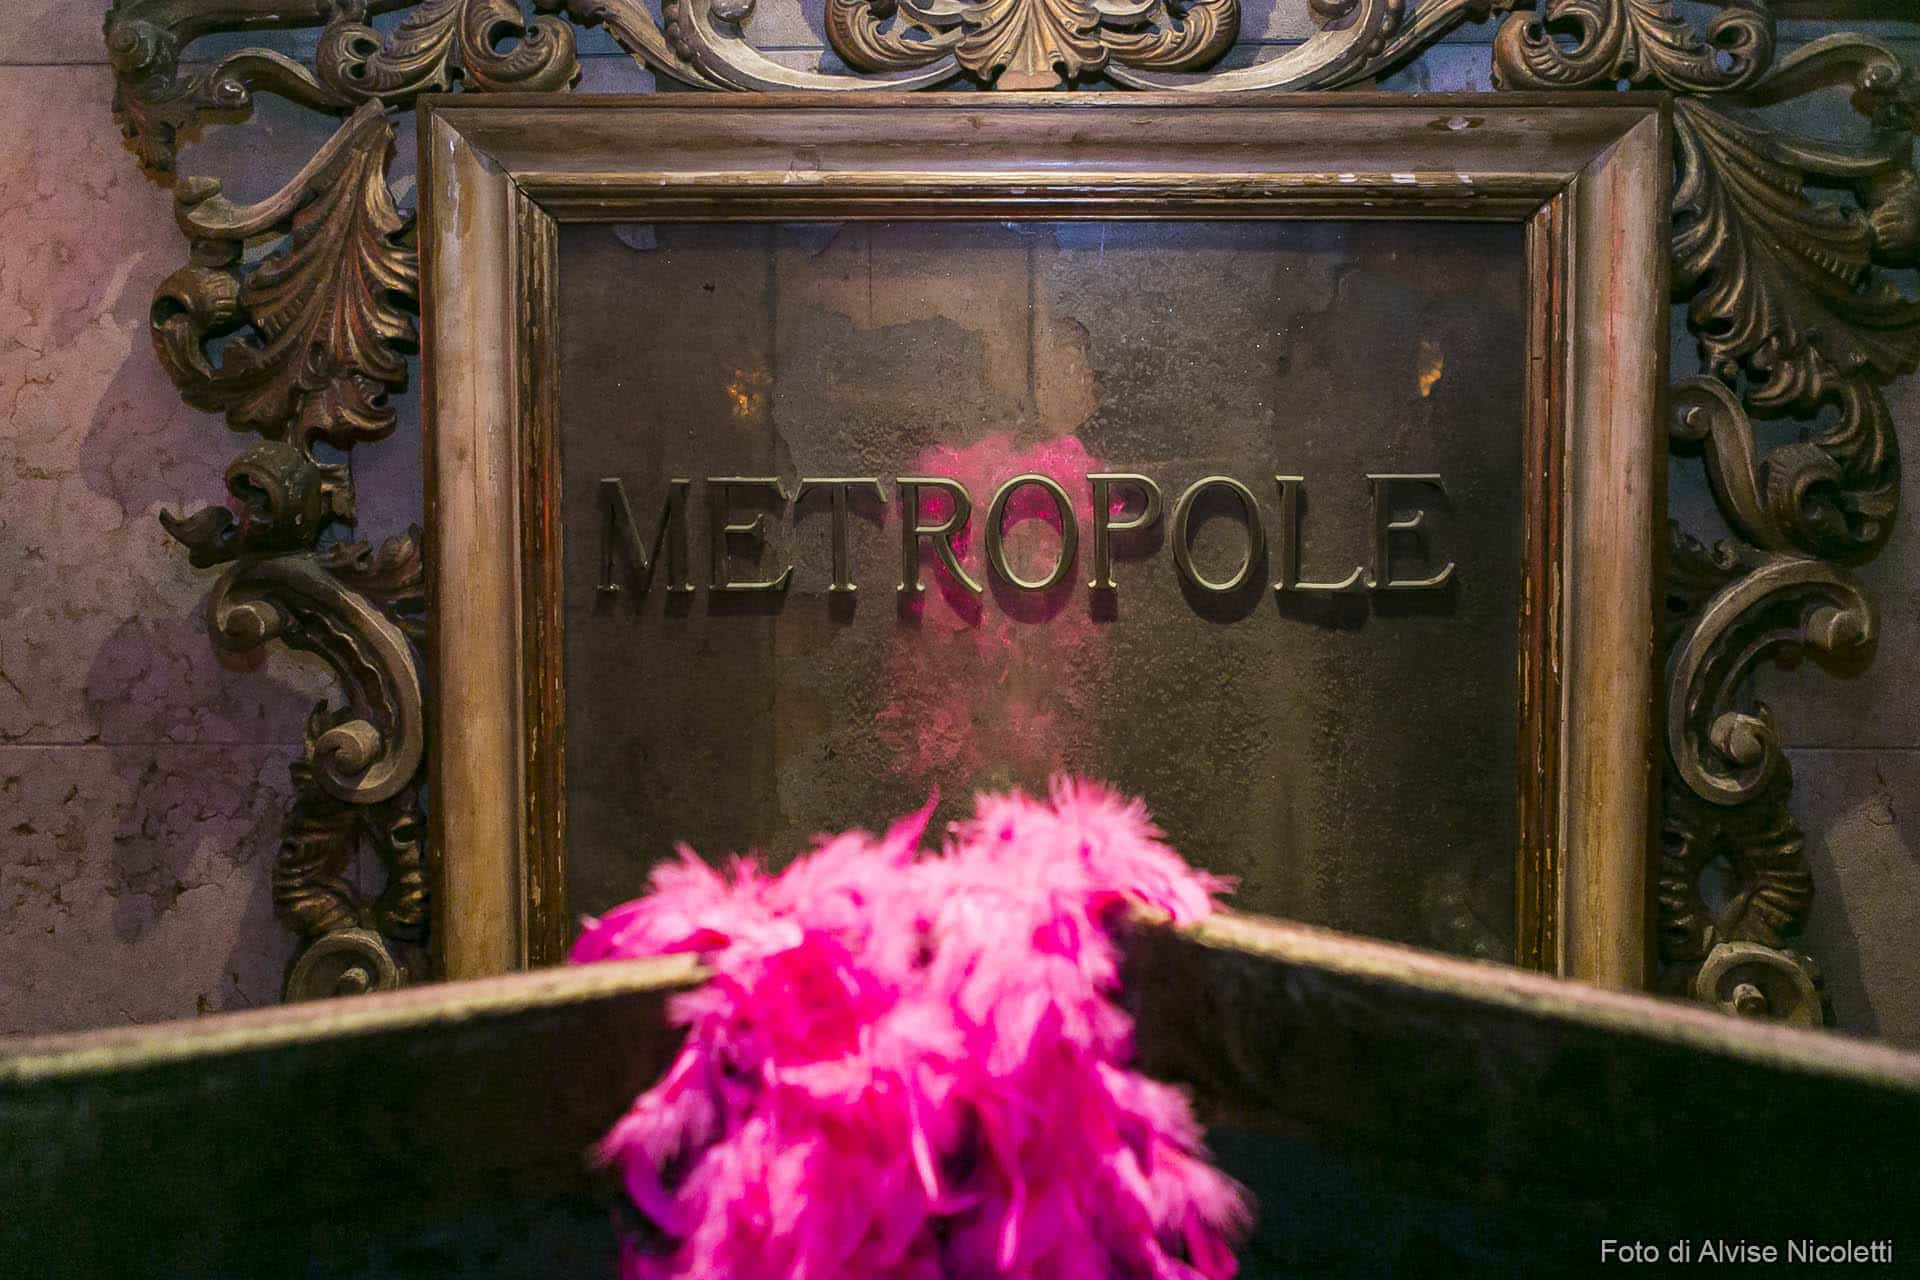 The Metropole Carnival Party